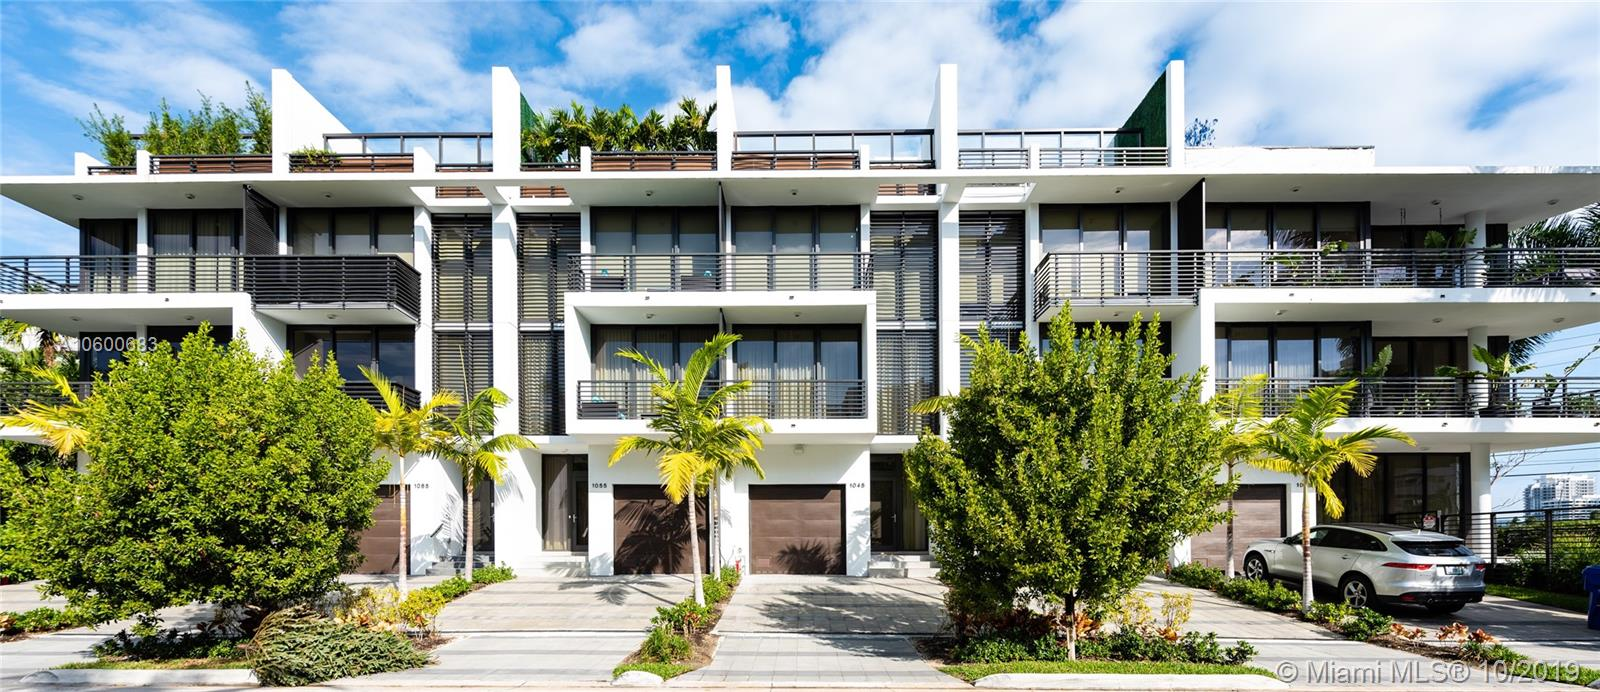 Modern new construction townhome with it's own private rooftop pool. Designed using clean lines & incorporating natural & earth tone materials. Flexible & practical open floor plan. 3 bedrooms, spacious living & dining areas, open gourmet kitchen with European style cabinets &Bosch stainless steel appliances. Fantastic rooftop terrace w/360 degree picturesque views and private pool.